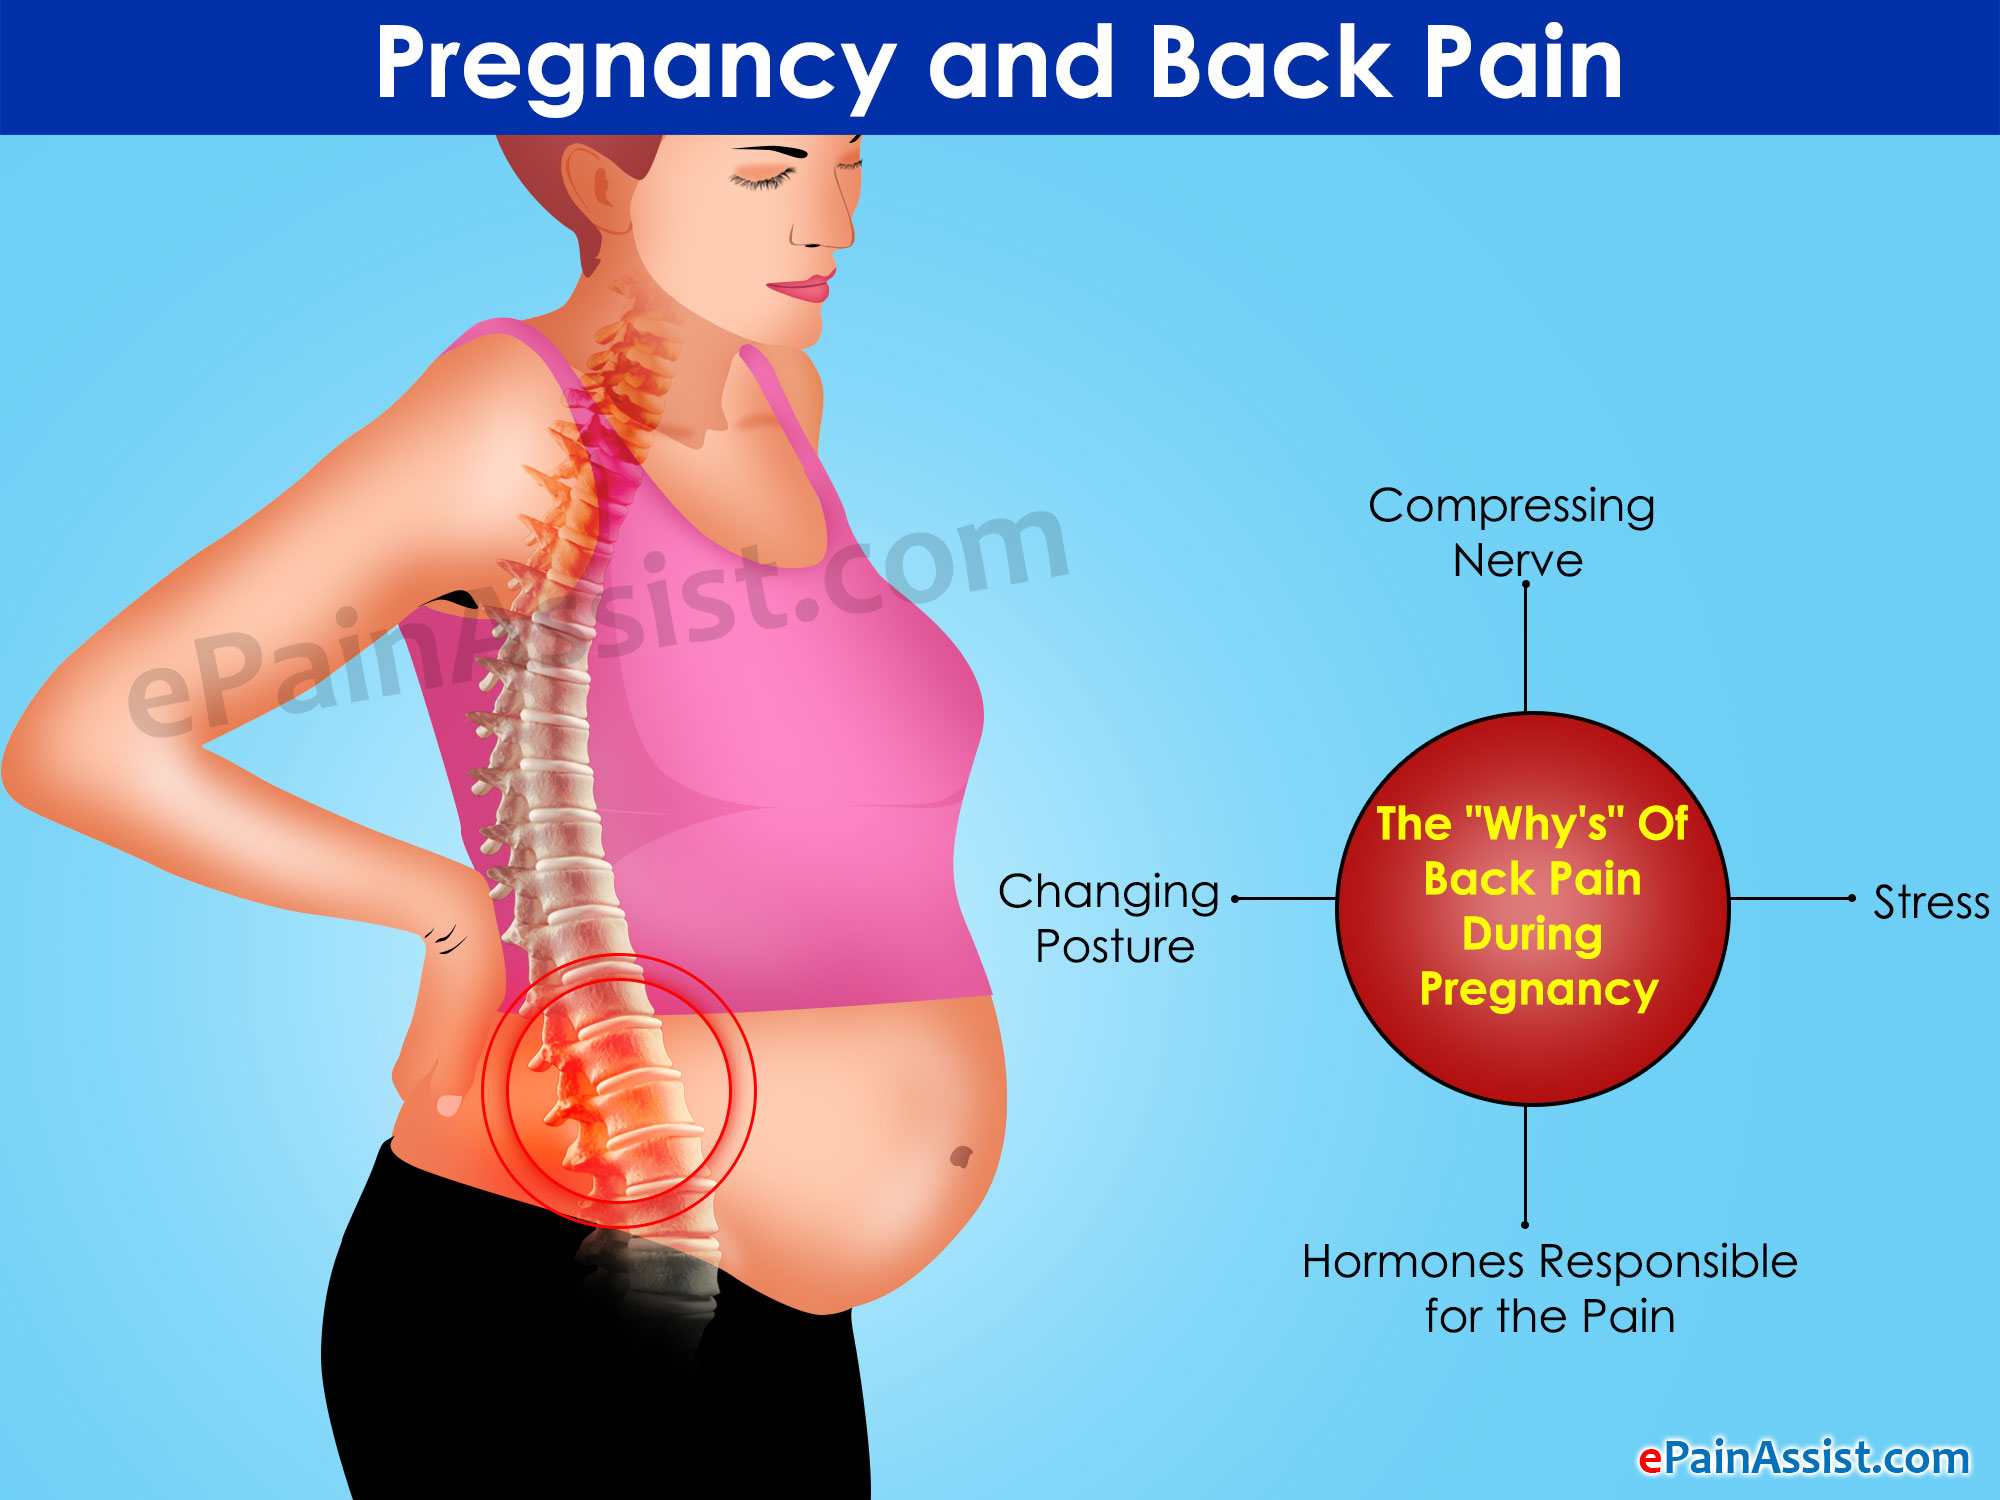 Abdominal cramps and lower back pain early pregnancy